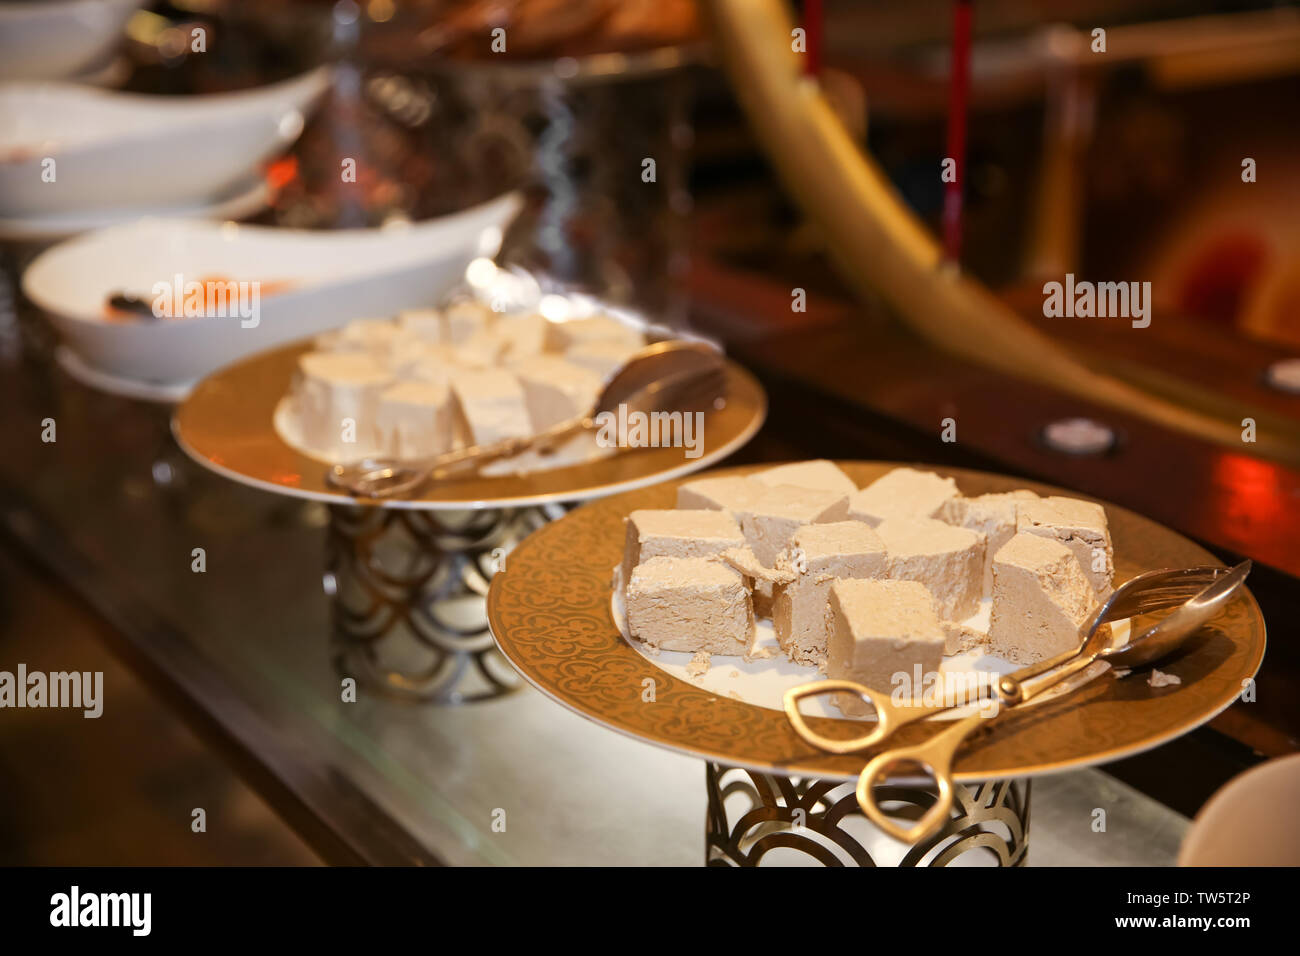 Plates with different kinds of desserts on table at buffet - Stock Image